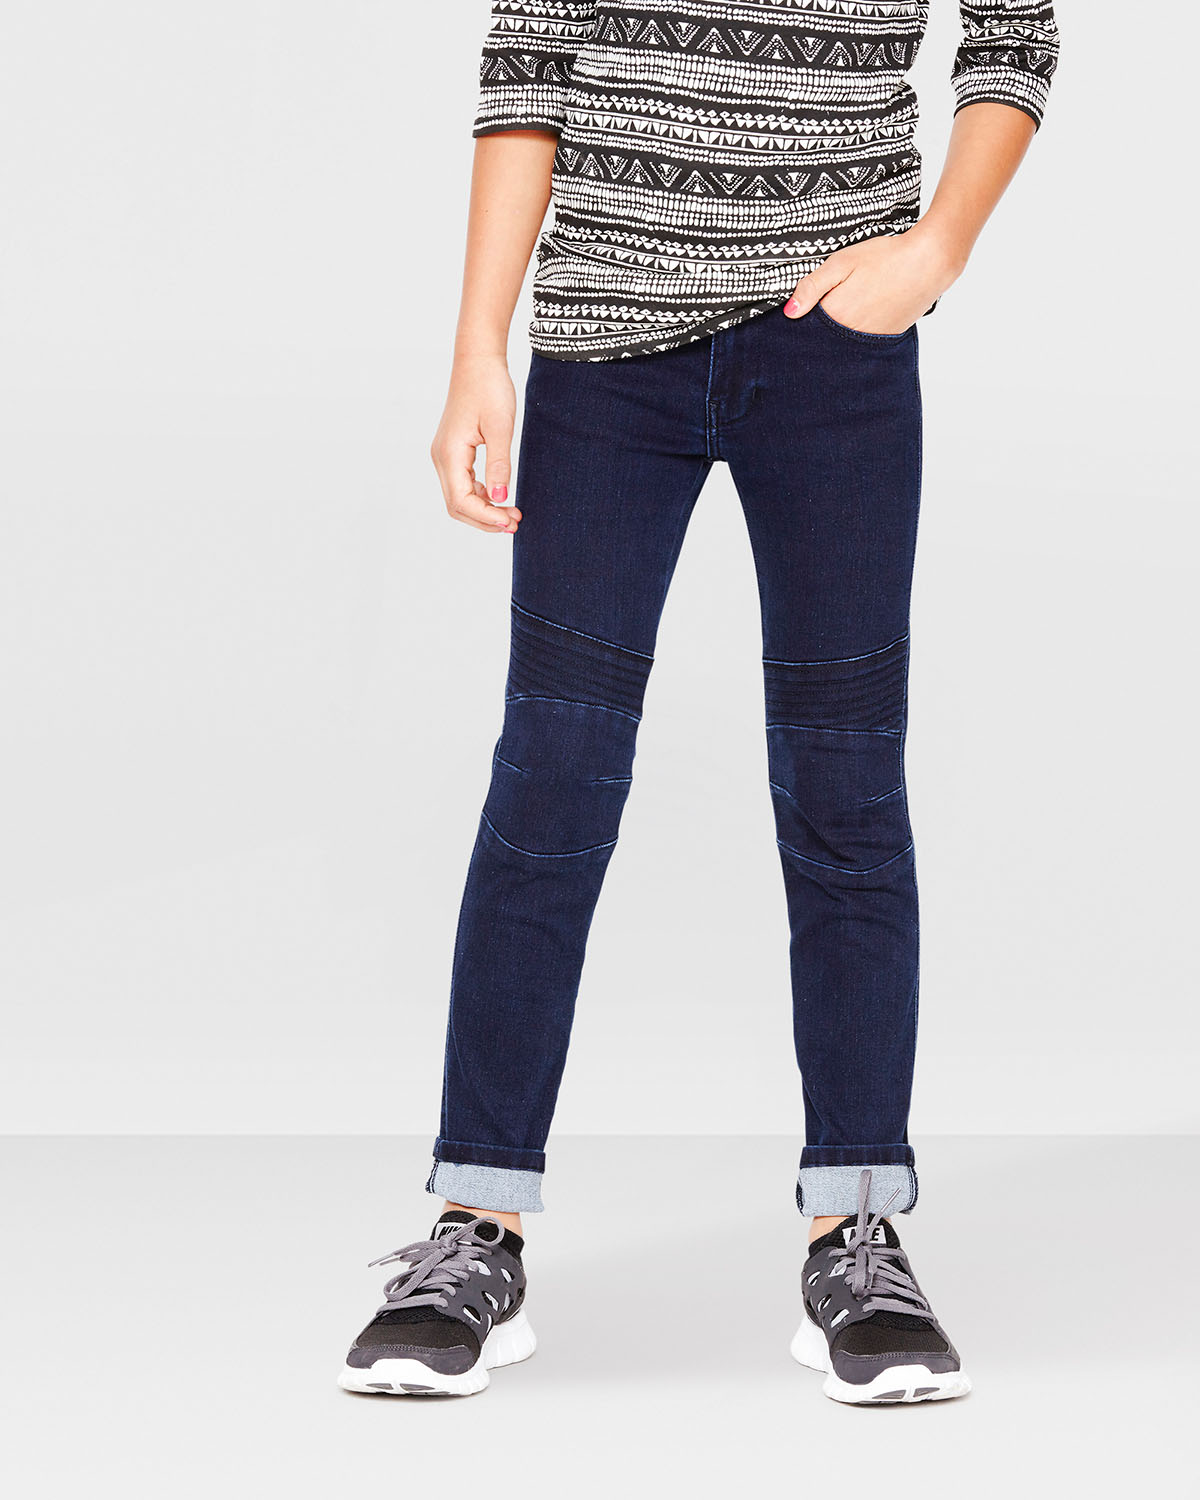 Buy low price, high quality jeans meisjes with worldwide shipping on dolcehouse.ml